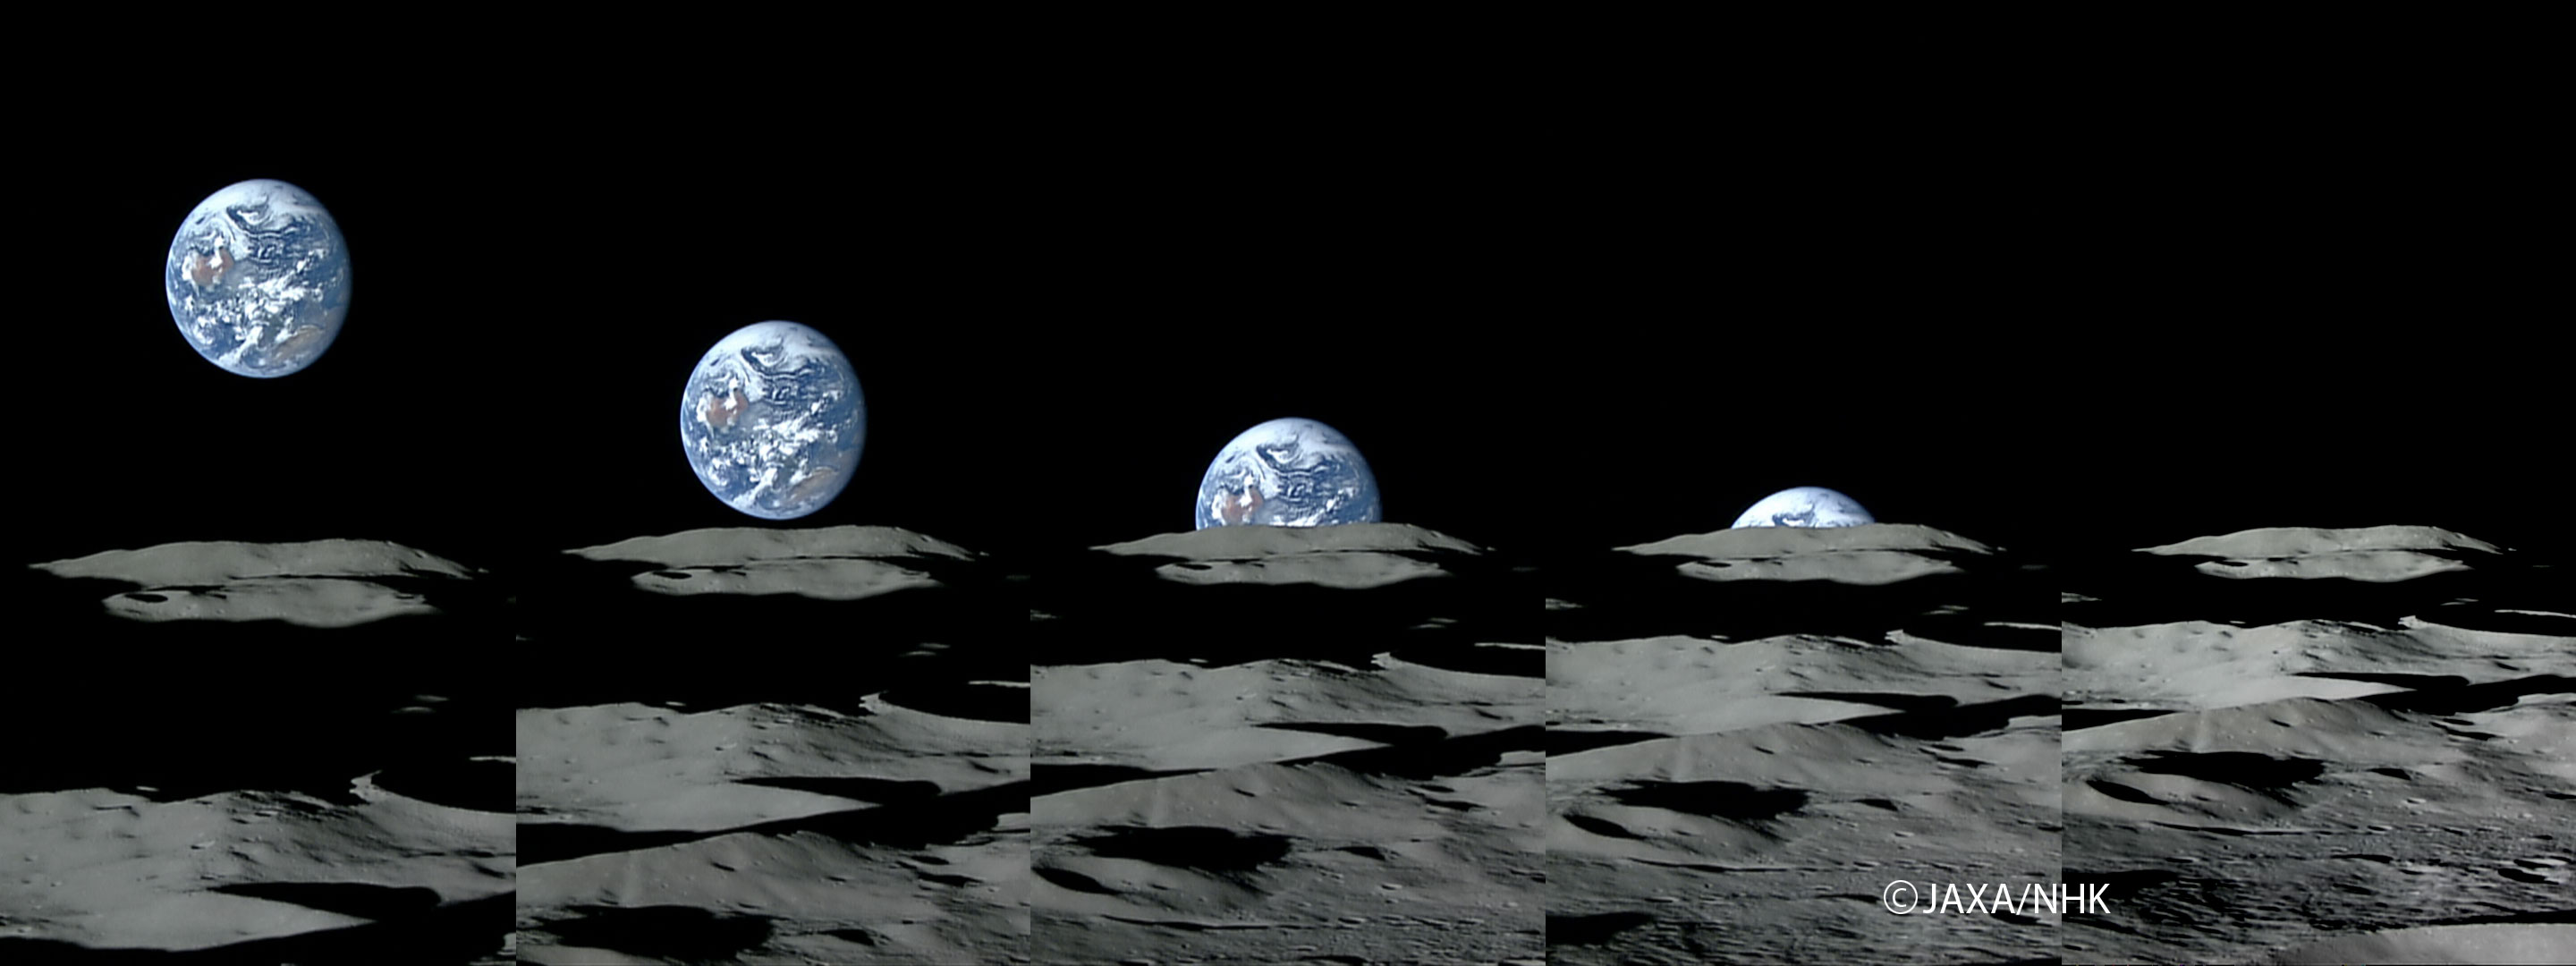 From the moon's perspective, seen here, the moon's shadow...  The Apollo astronauts captured shots of Earth rising on...